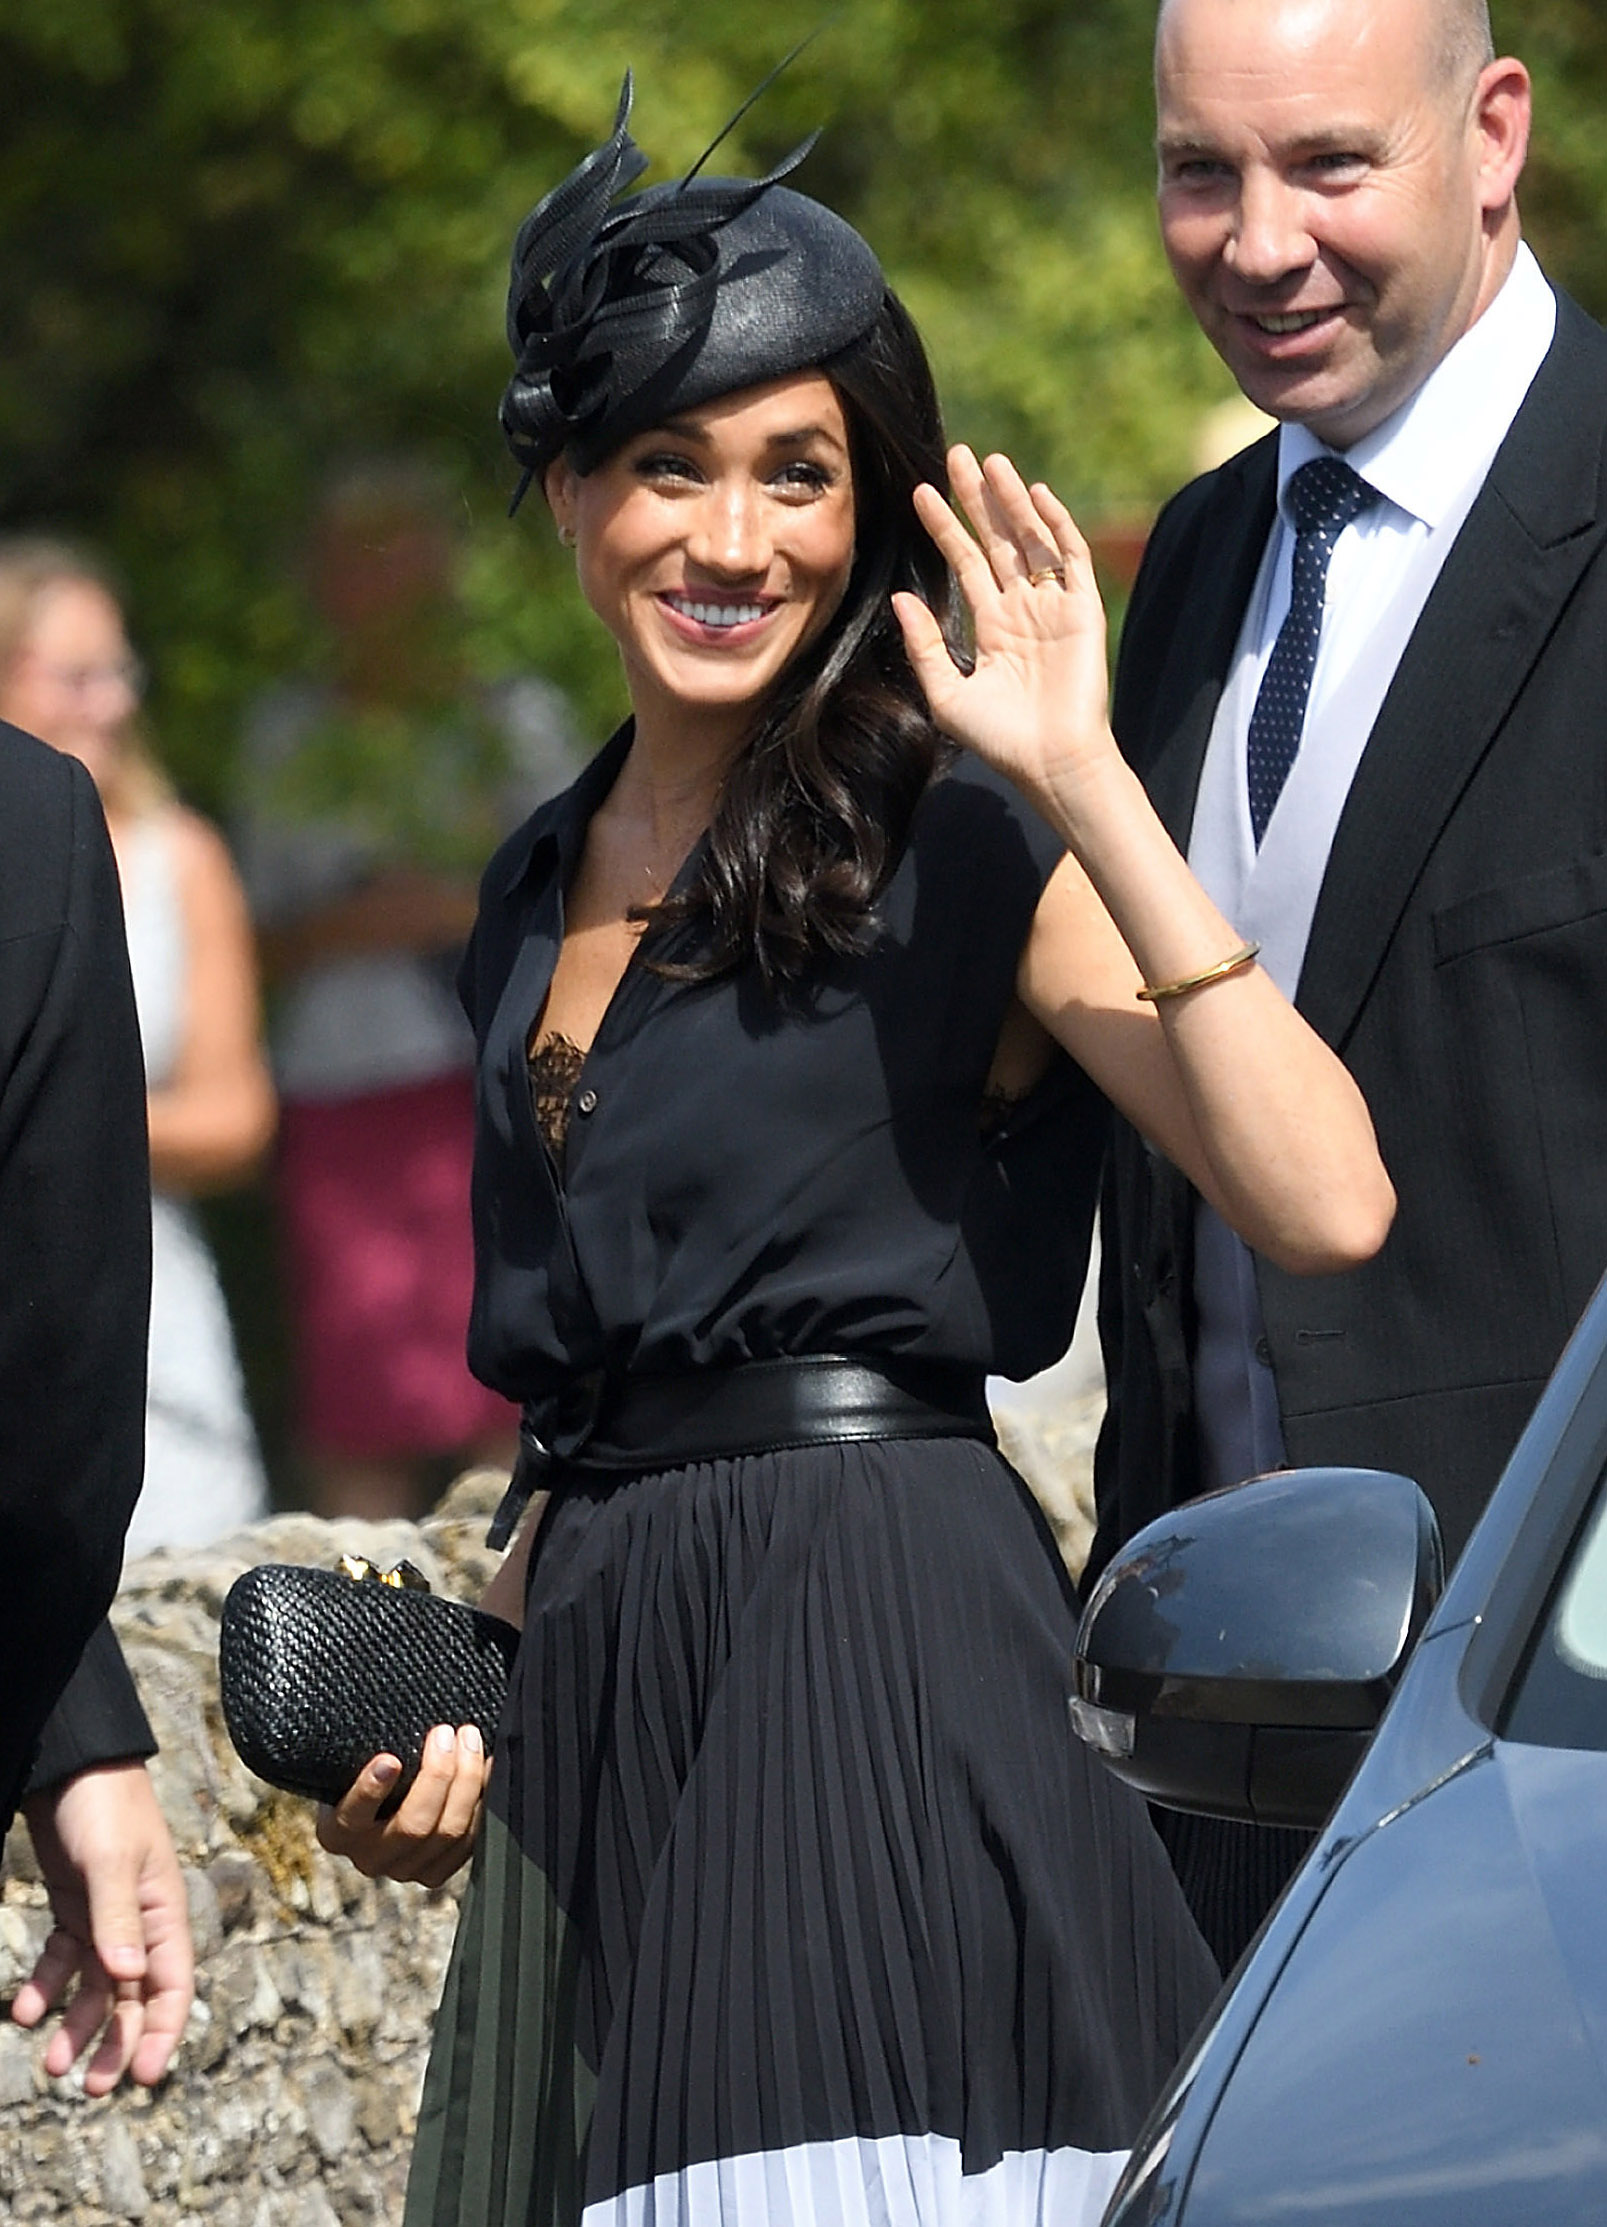 Meghan-Markle-Steps-Out-On-Her-Birthday-To-Attend-Charlie-Van-Straubenzees-Wedding